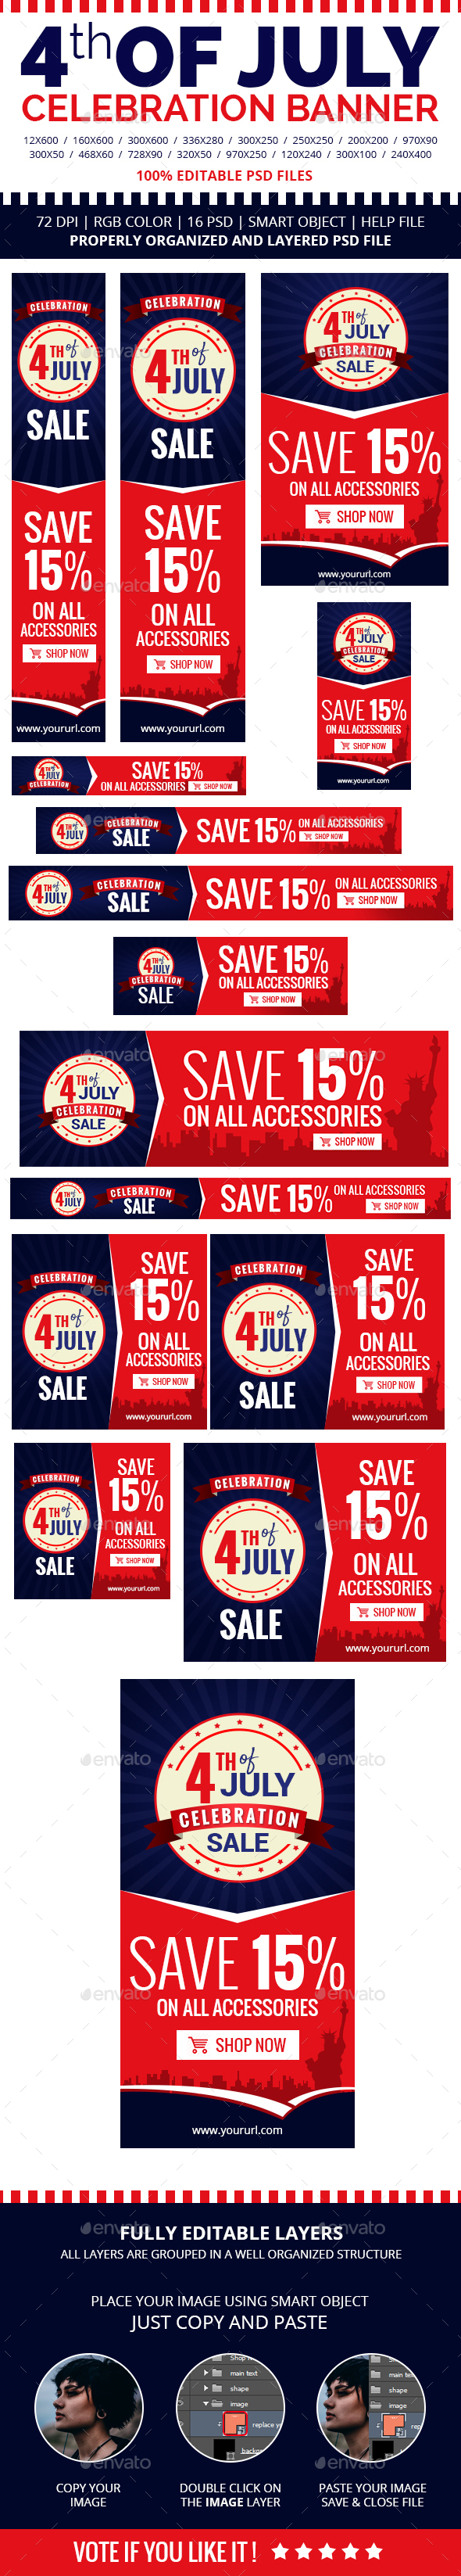 4th of July Celebration Banners - Banners & Ads Web Elements